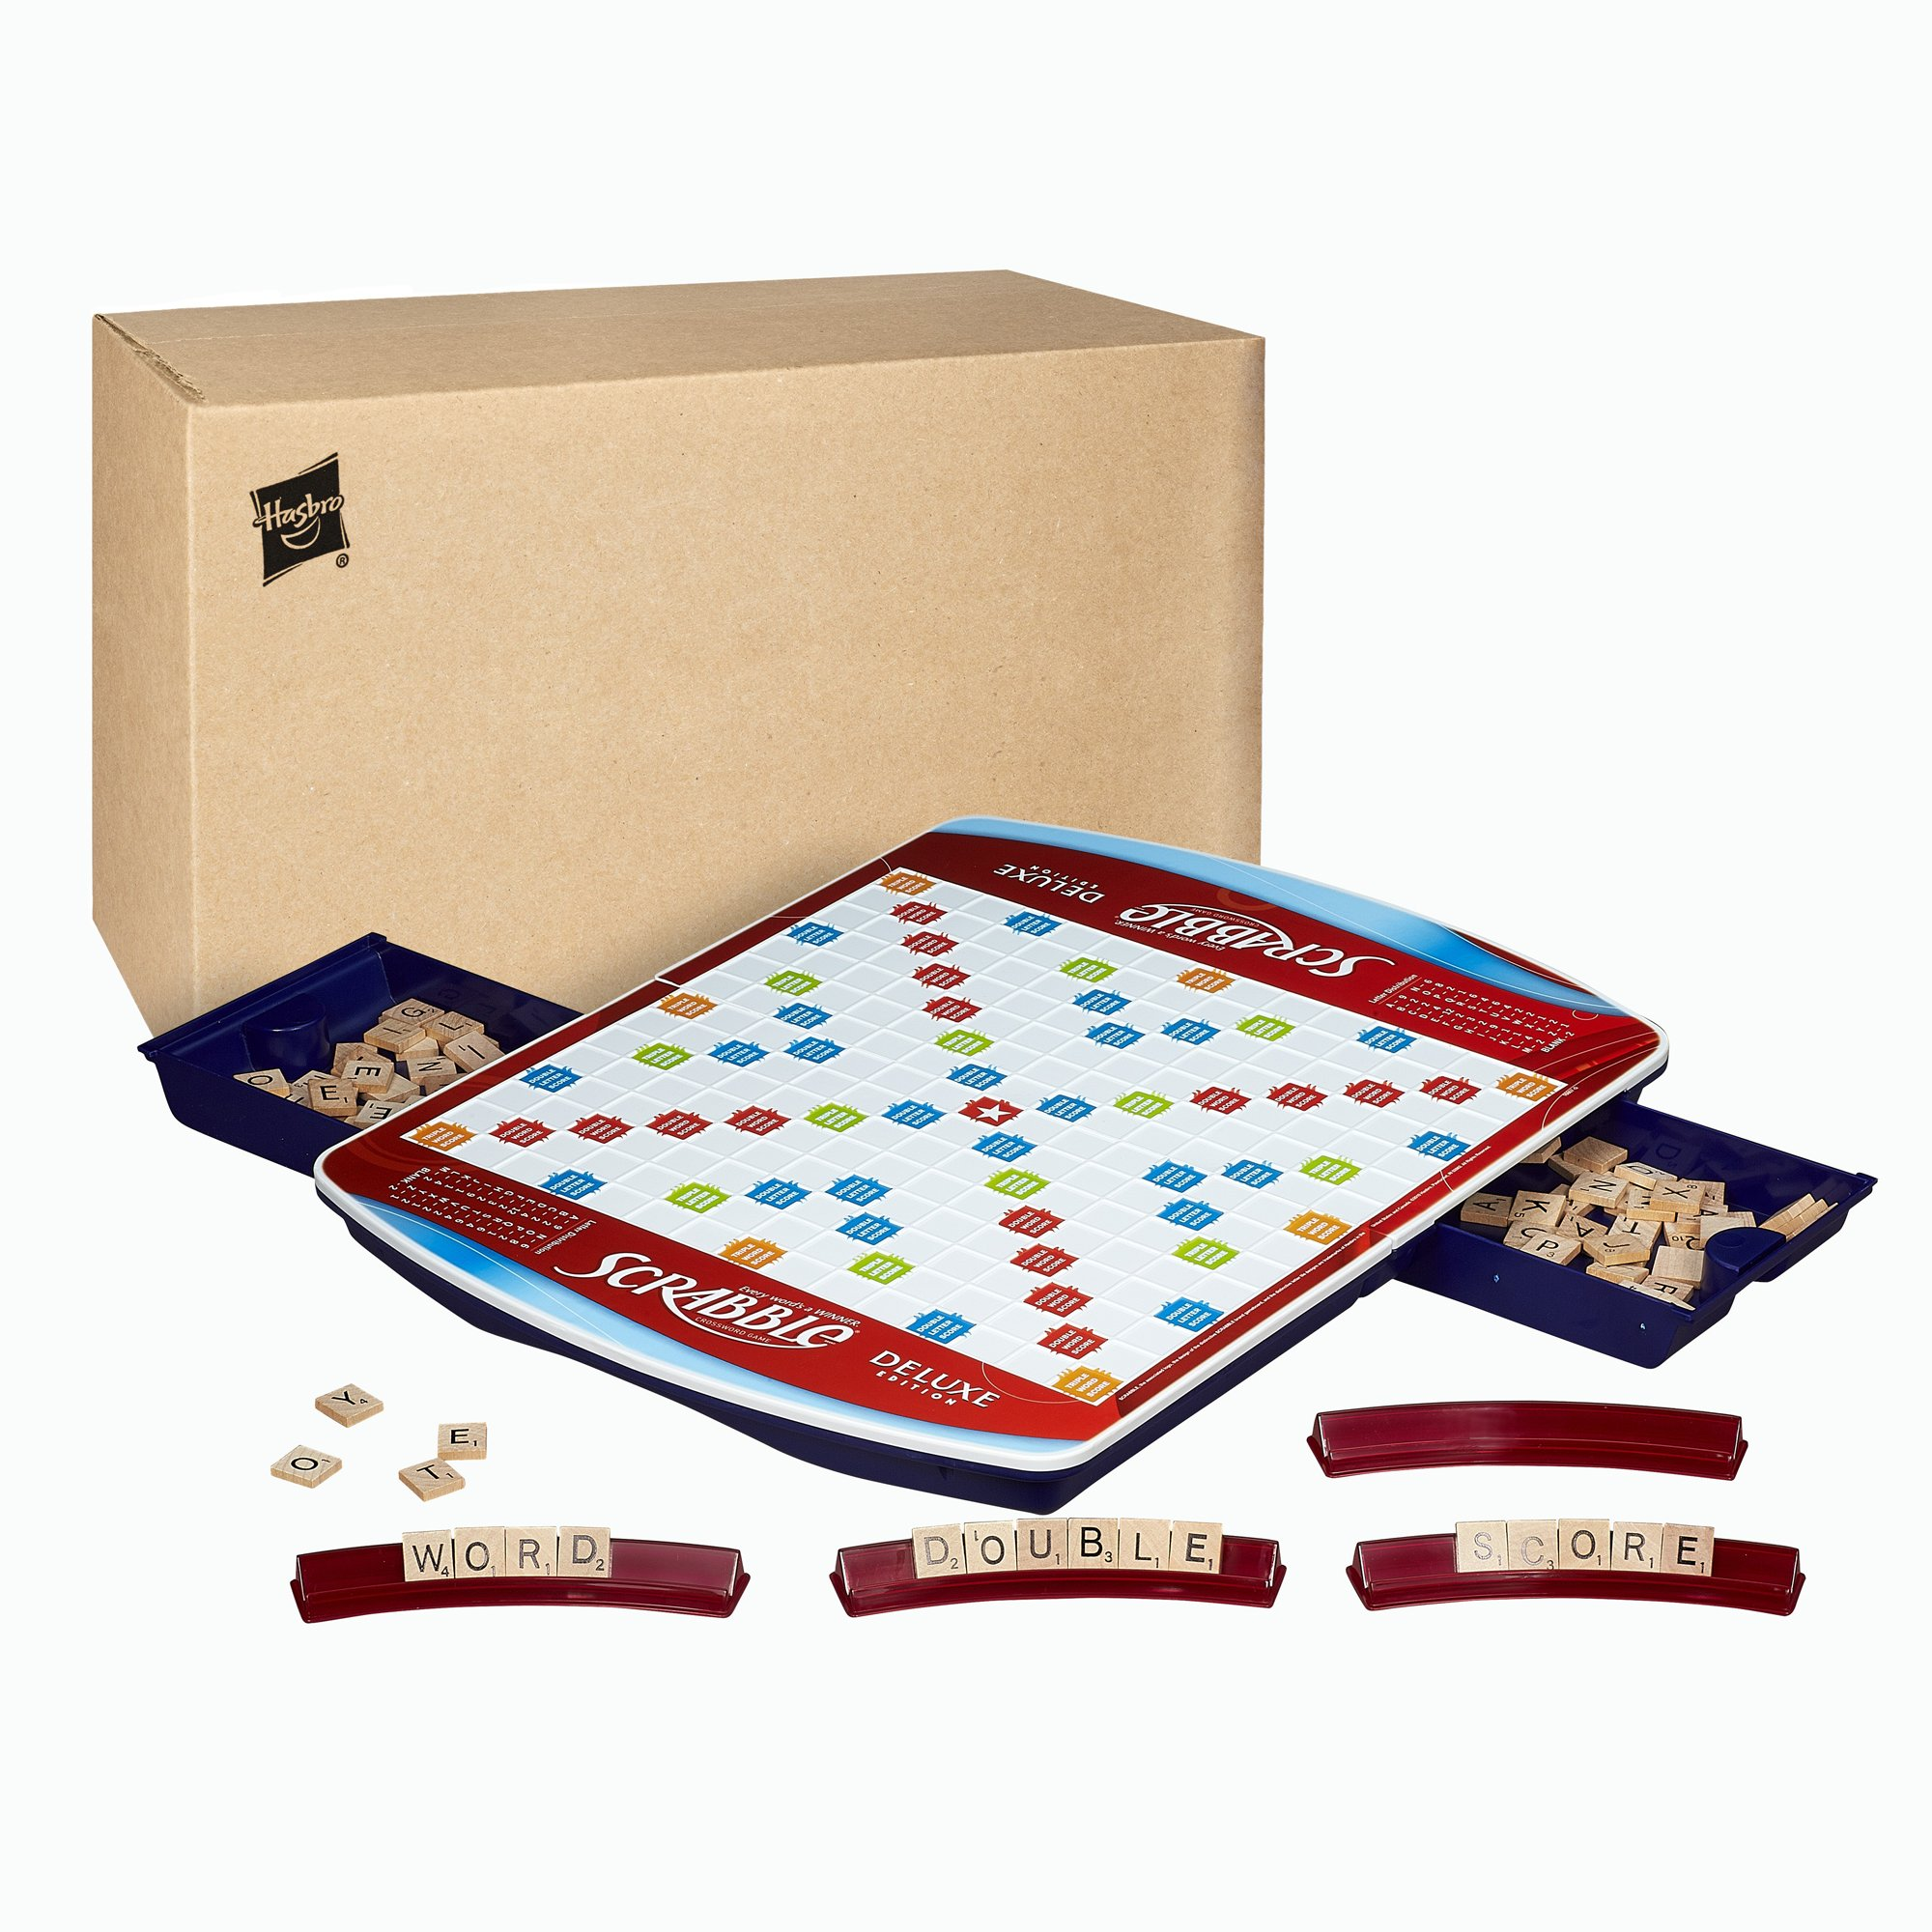 Scrabble game for kids 8 years and up